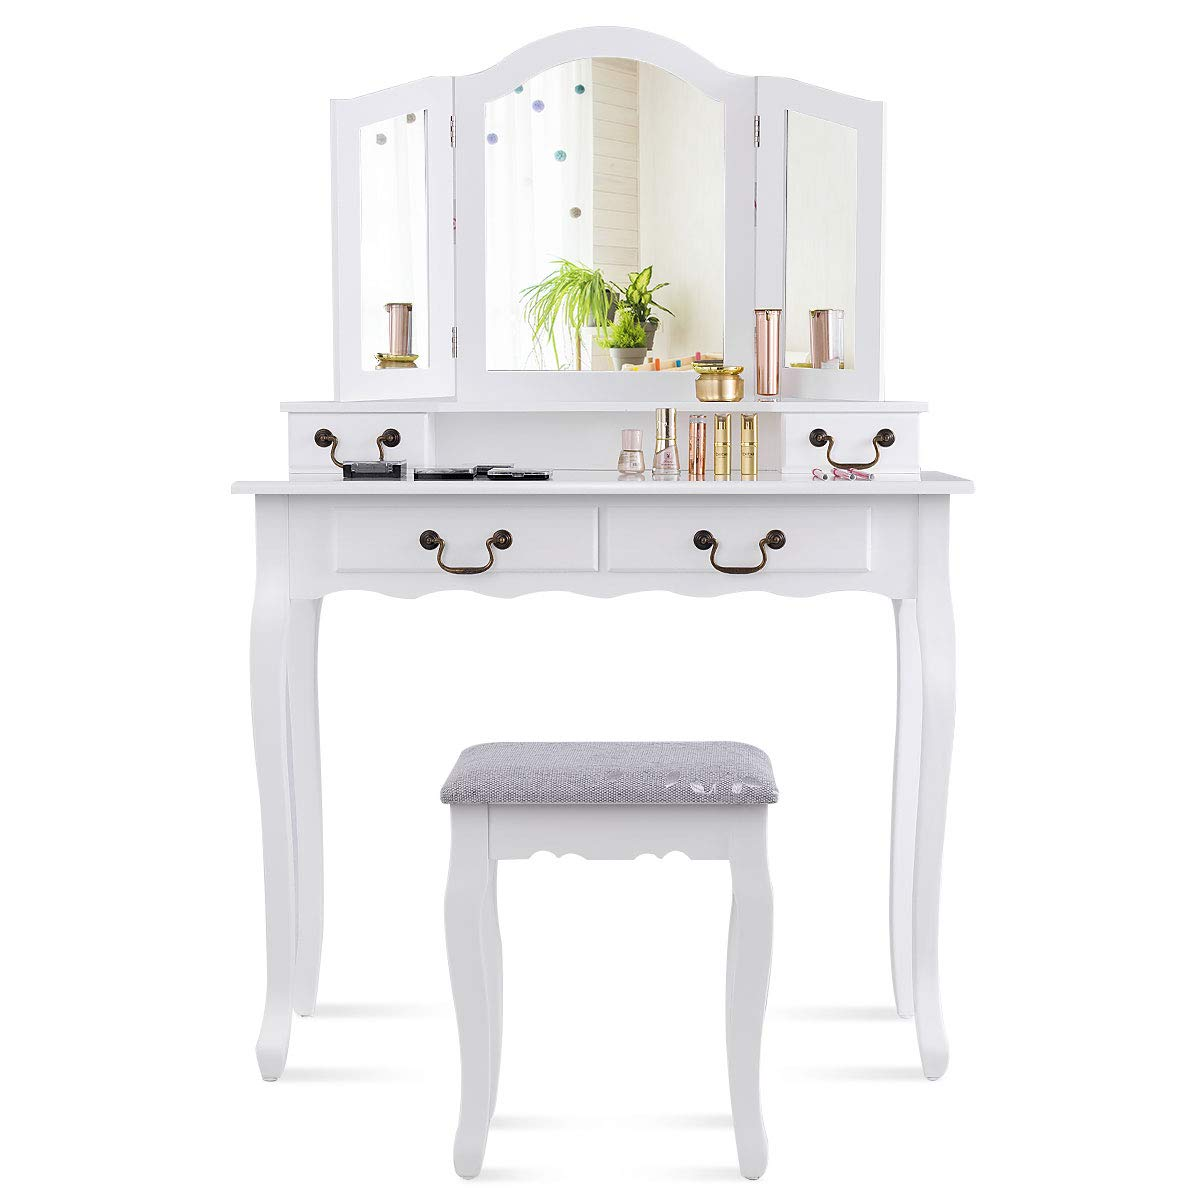 CHARMAID Tri-Folding Mirror Vanity Set with Cushioned Stool and 4 Drawers, Makeup Dressing Table with Cushioned Stool for Women Girls Bedroom, Bedroom Bathroom Vanity Table and Stool Set (White)